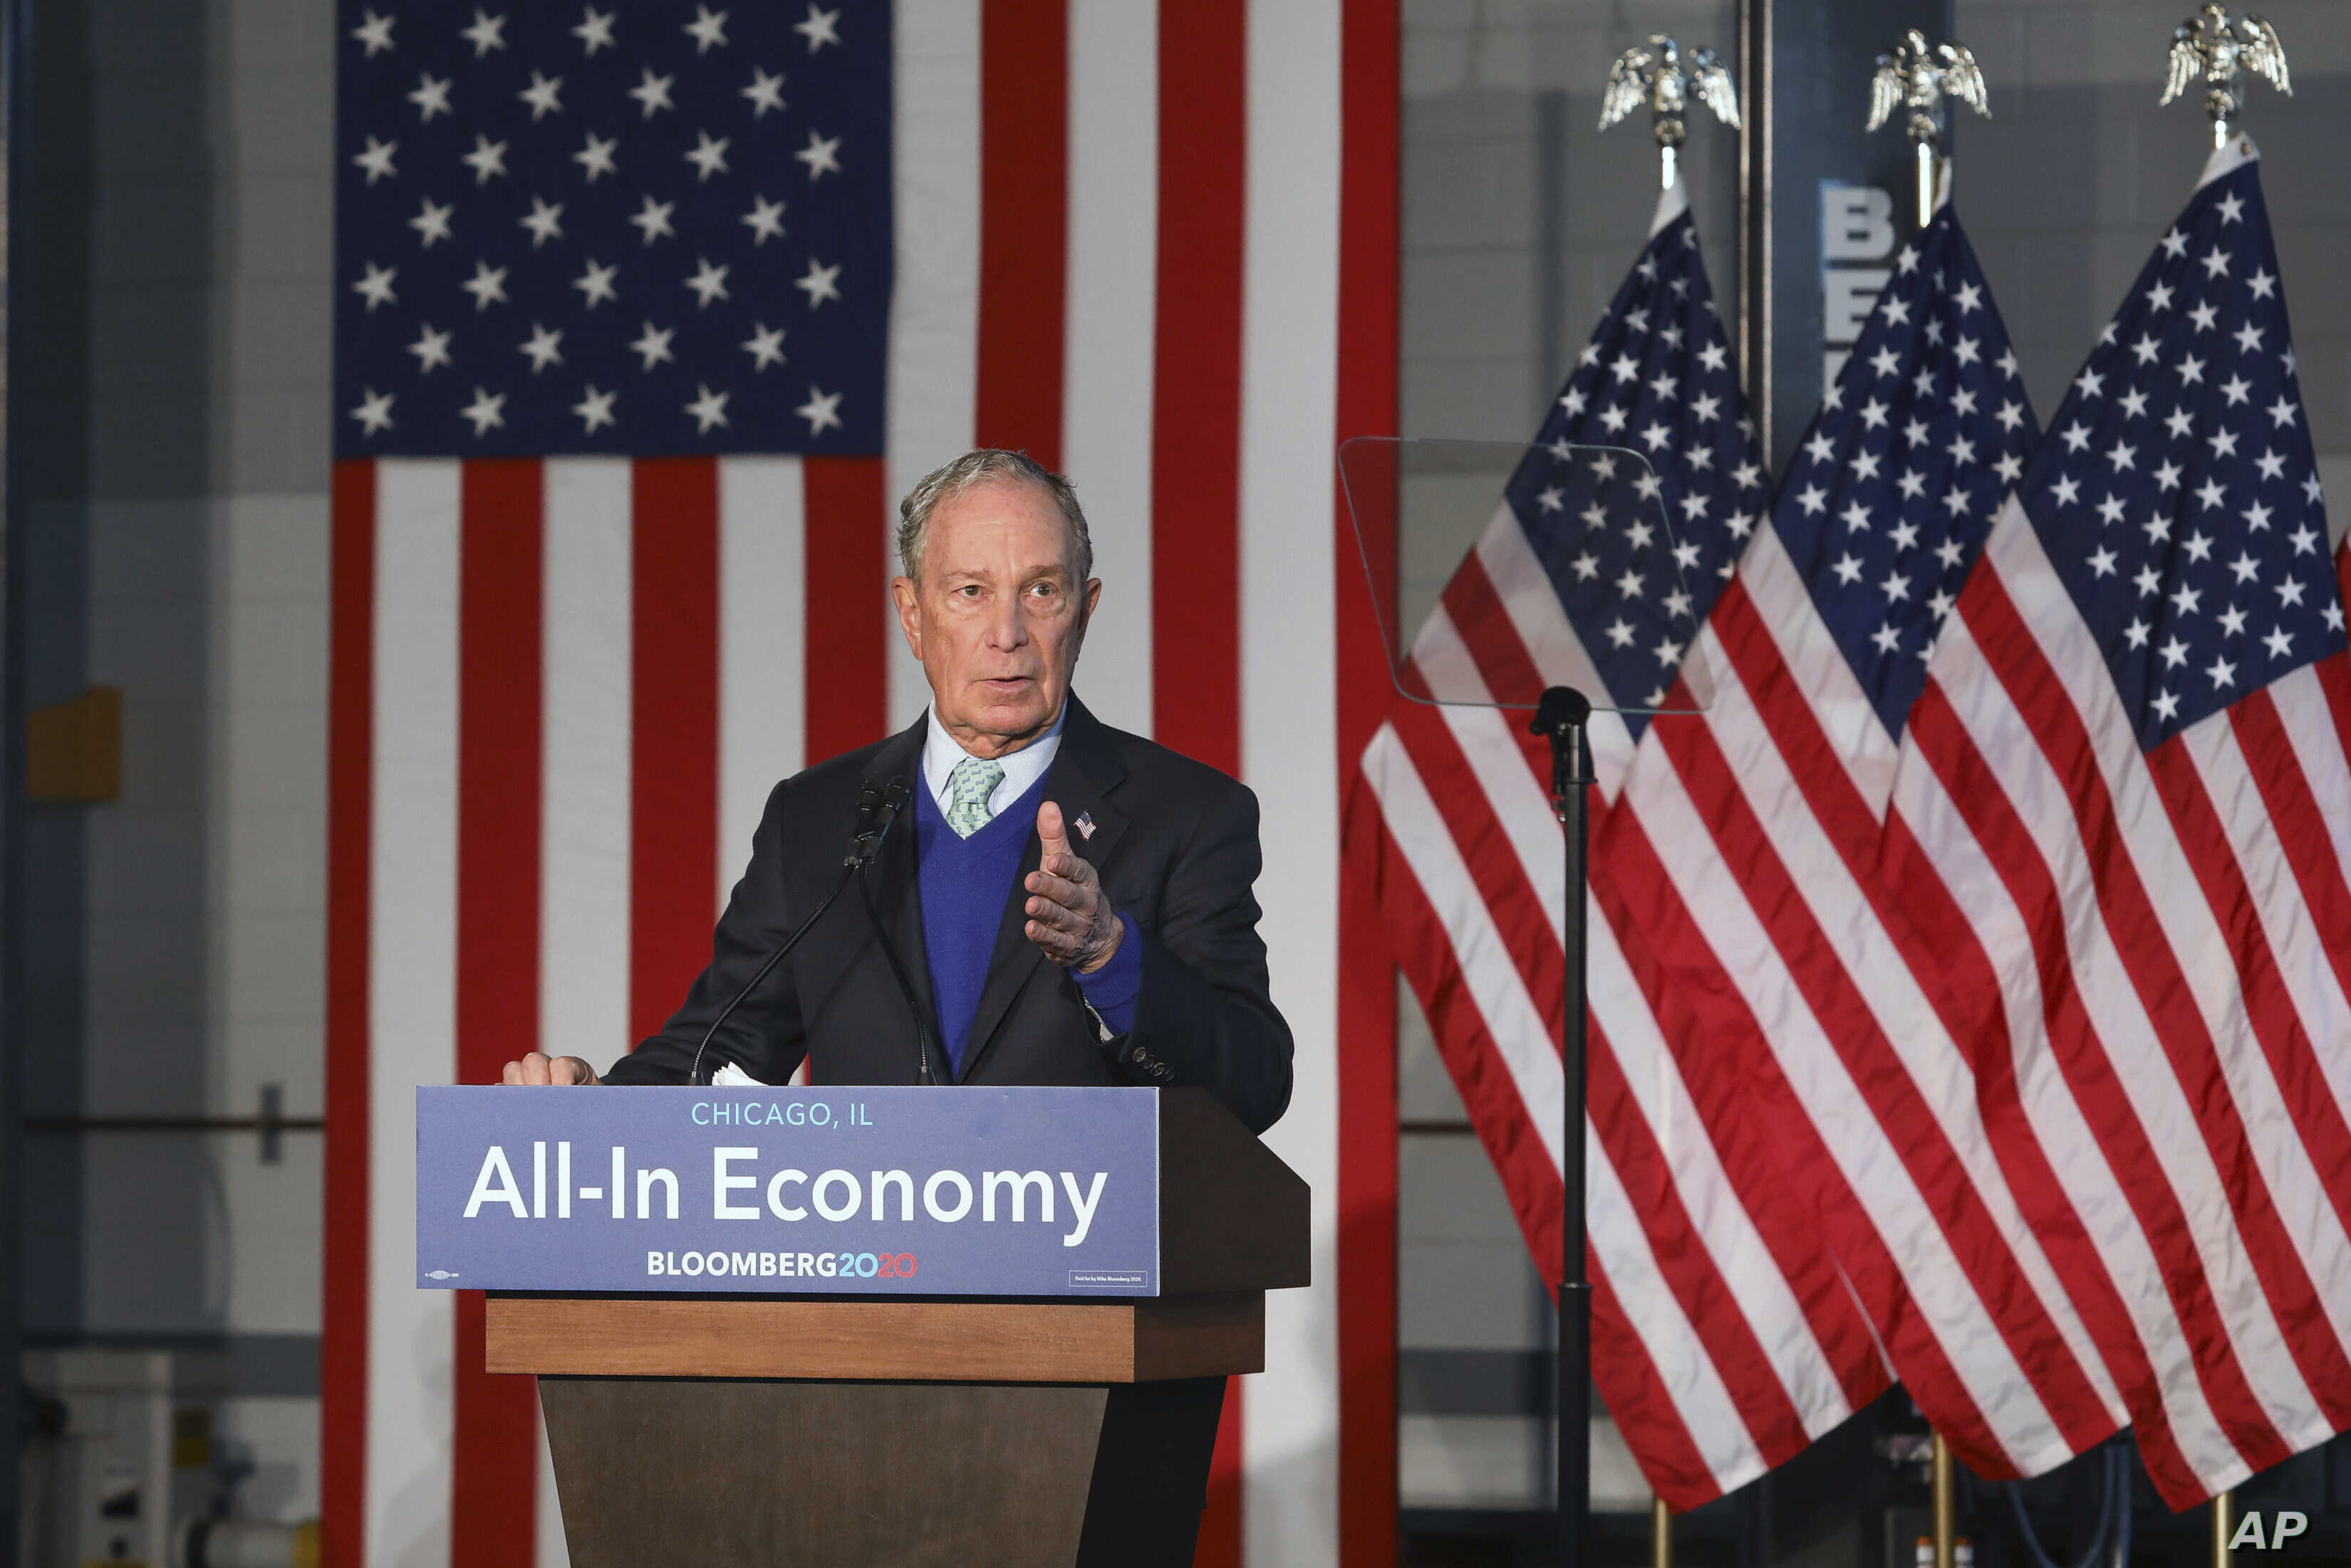 Inside Mike Bloomberg S Big Play For Black Voters Voice Of America English